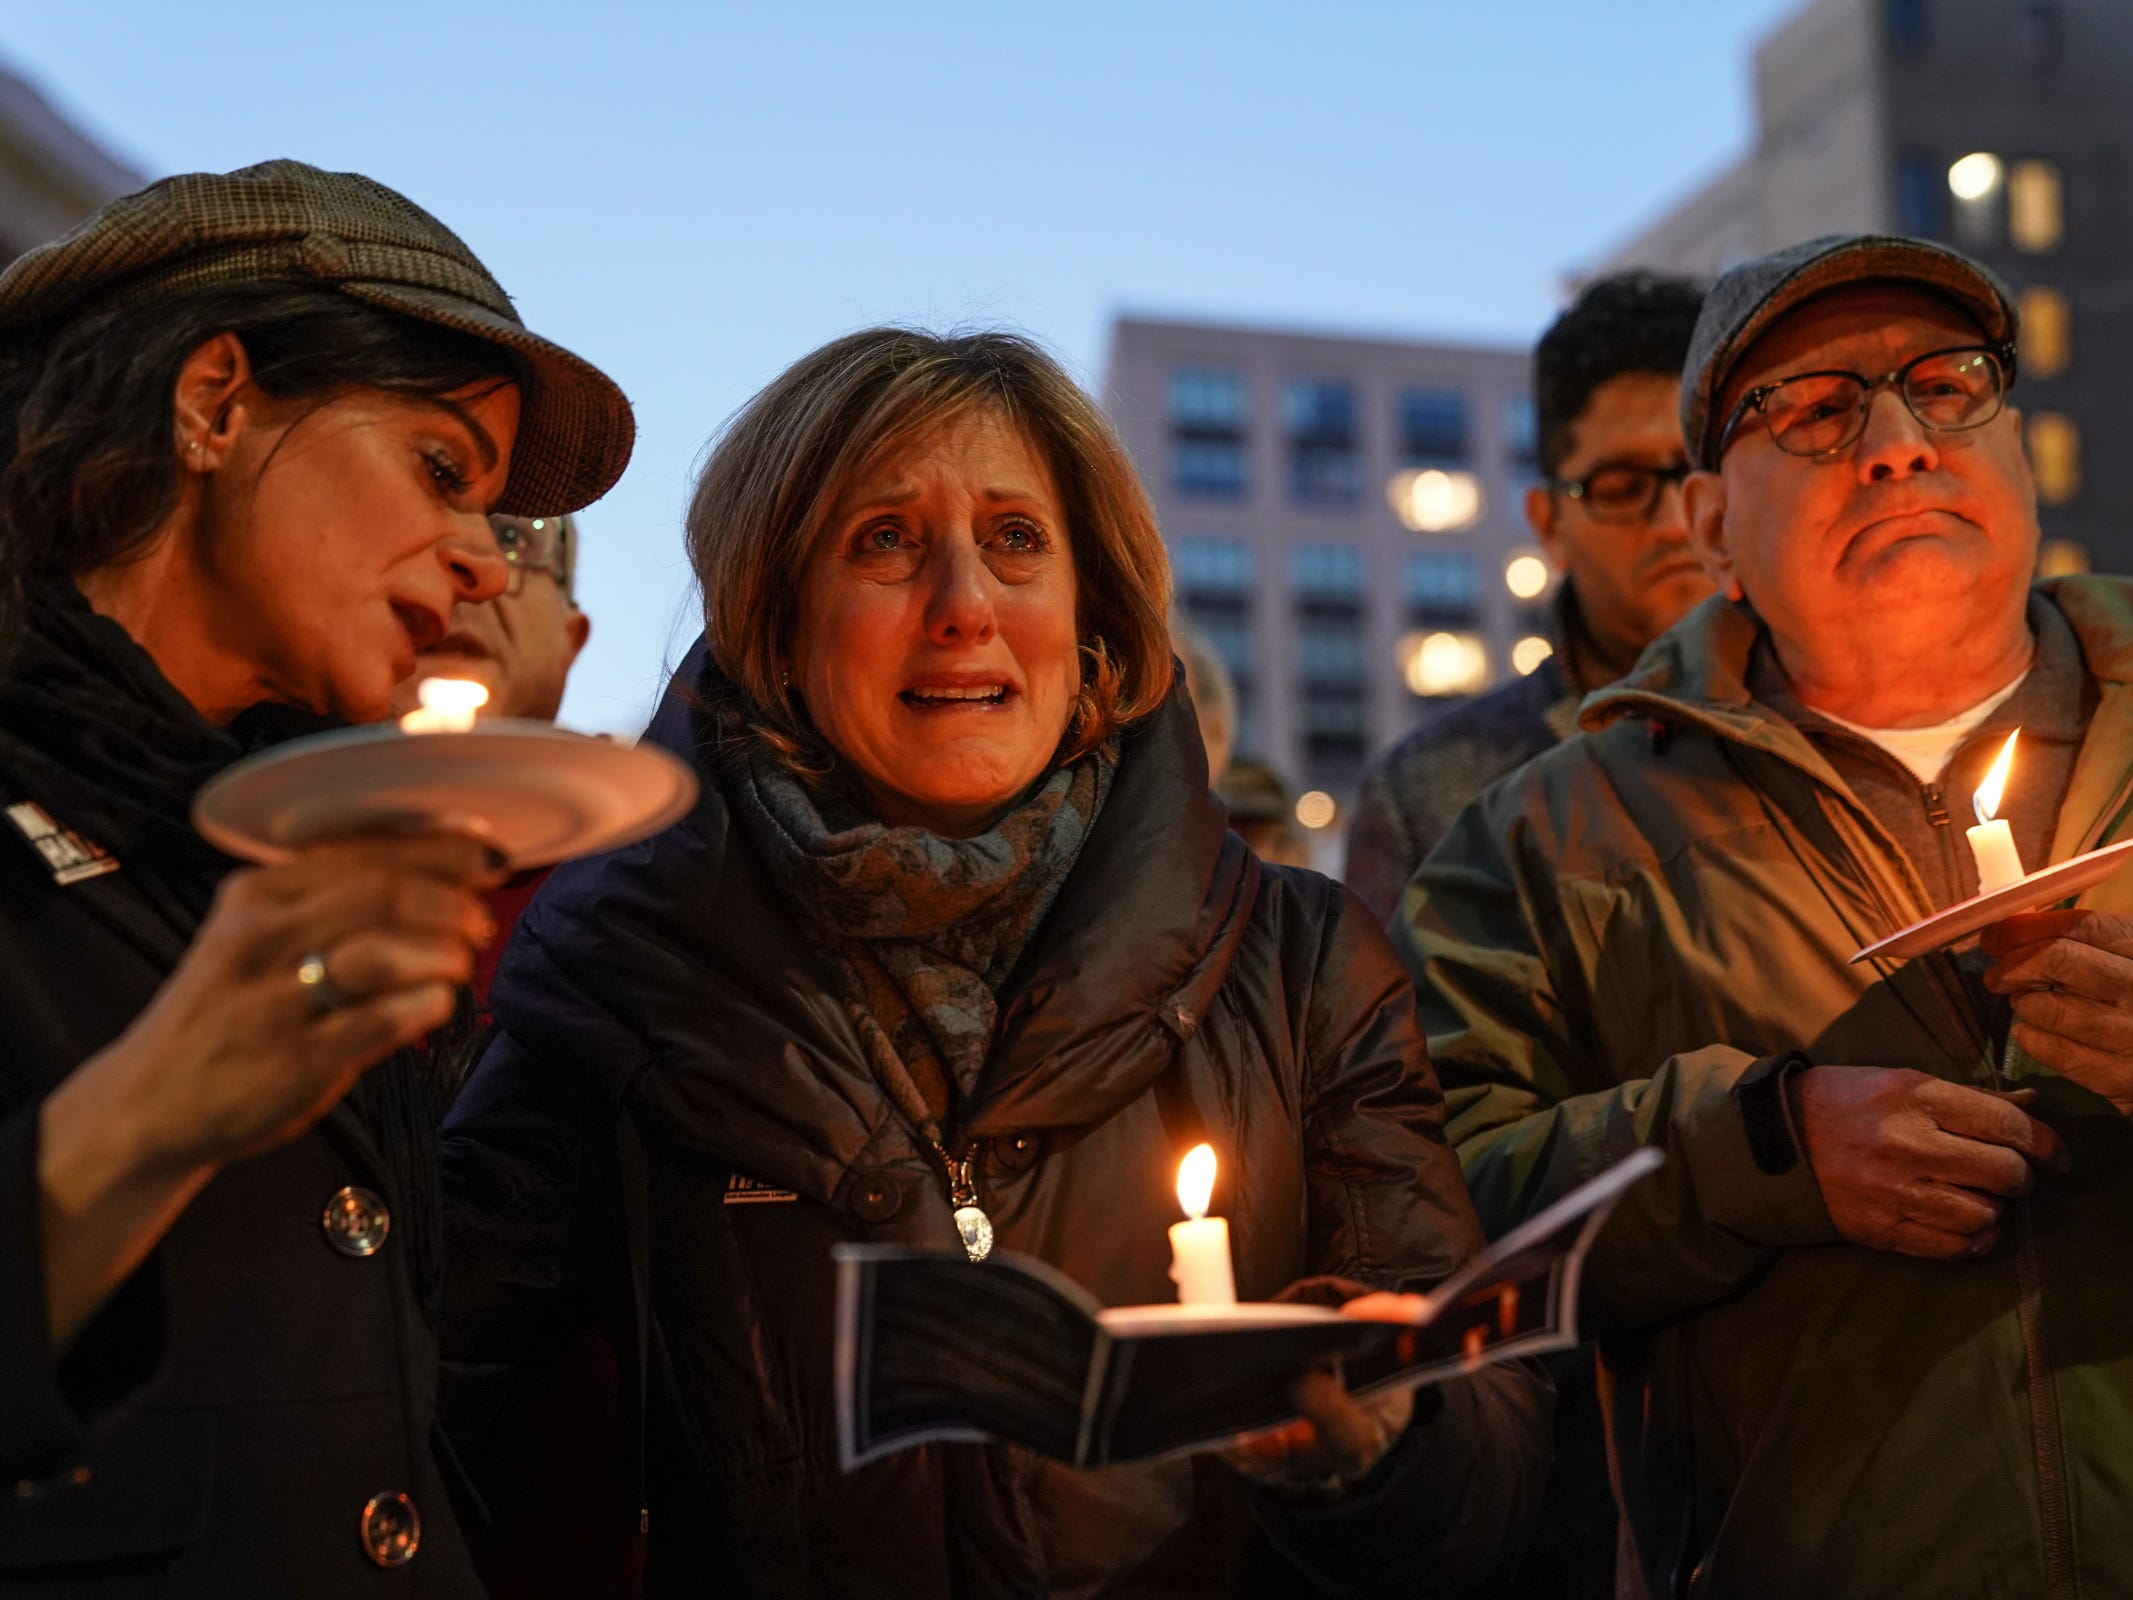 Shelly Podolsky (center) of Huntington Woods gets emotional while standing with her husband Arnold Podolsky (right) of Huntington Woods and Rachel Shere of West Bloomfield while listening to a speaker during a vigil for the shooting victims killed inside the Tree of Life synagogue in Pittsburgh on Monday, October 29, 2018 at Capitol Park in downtown Detroit.